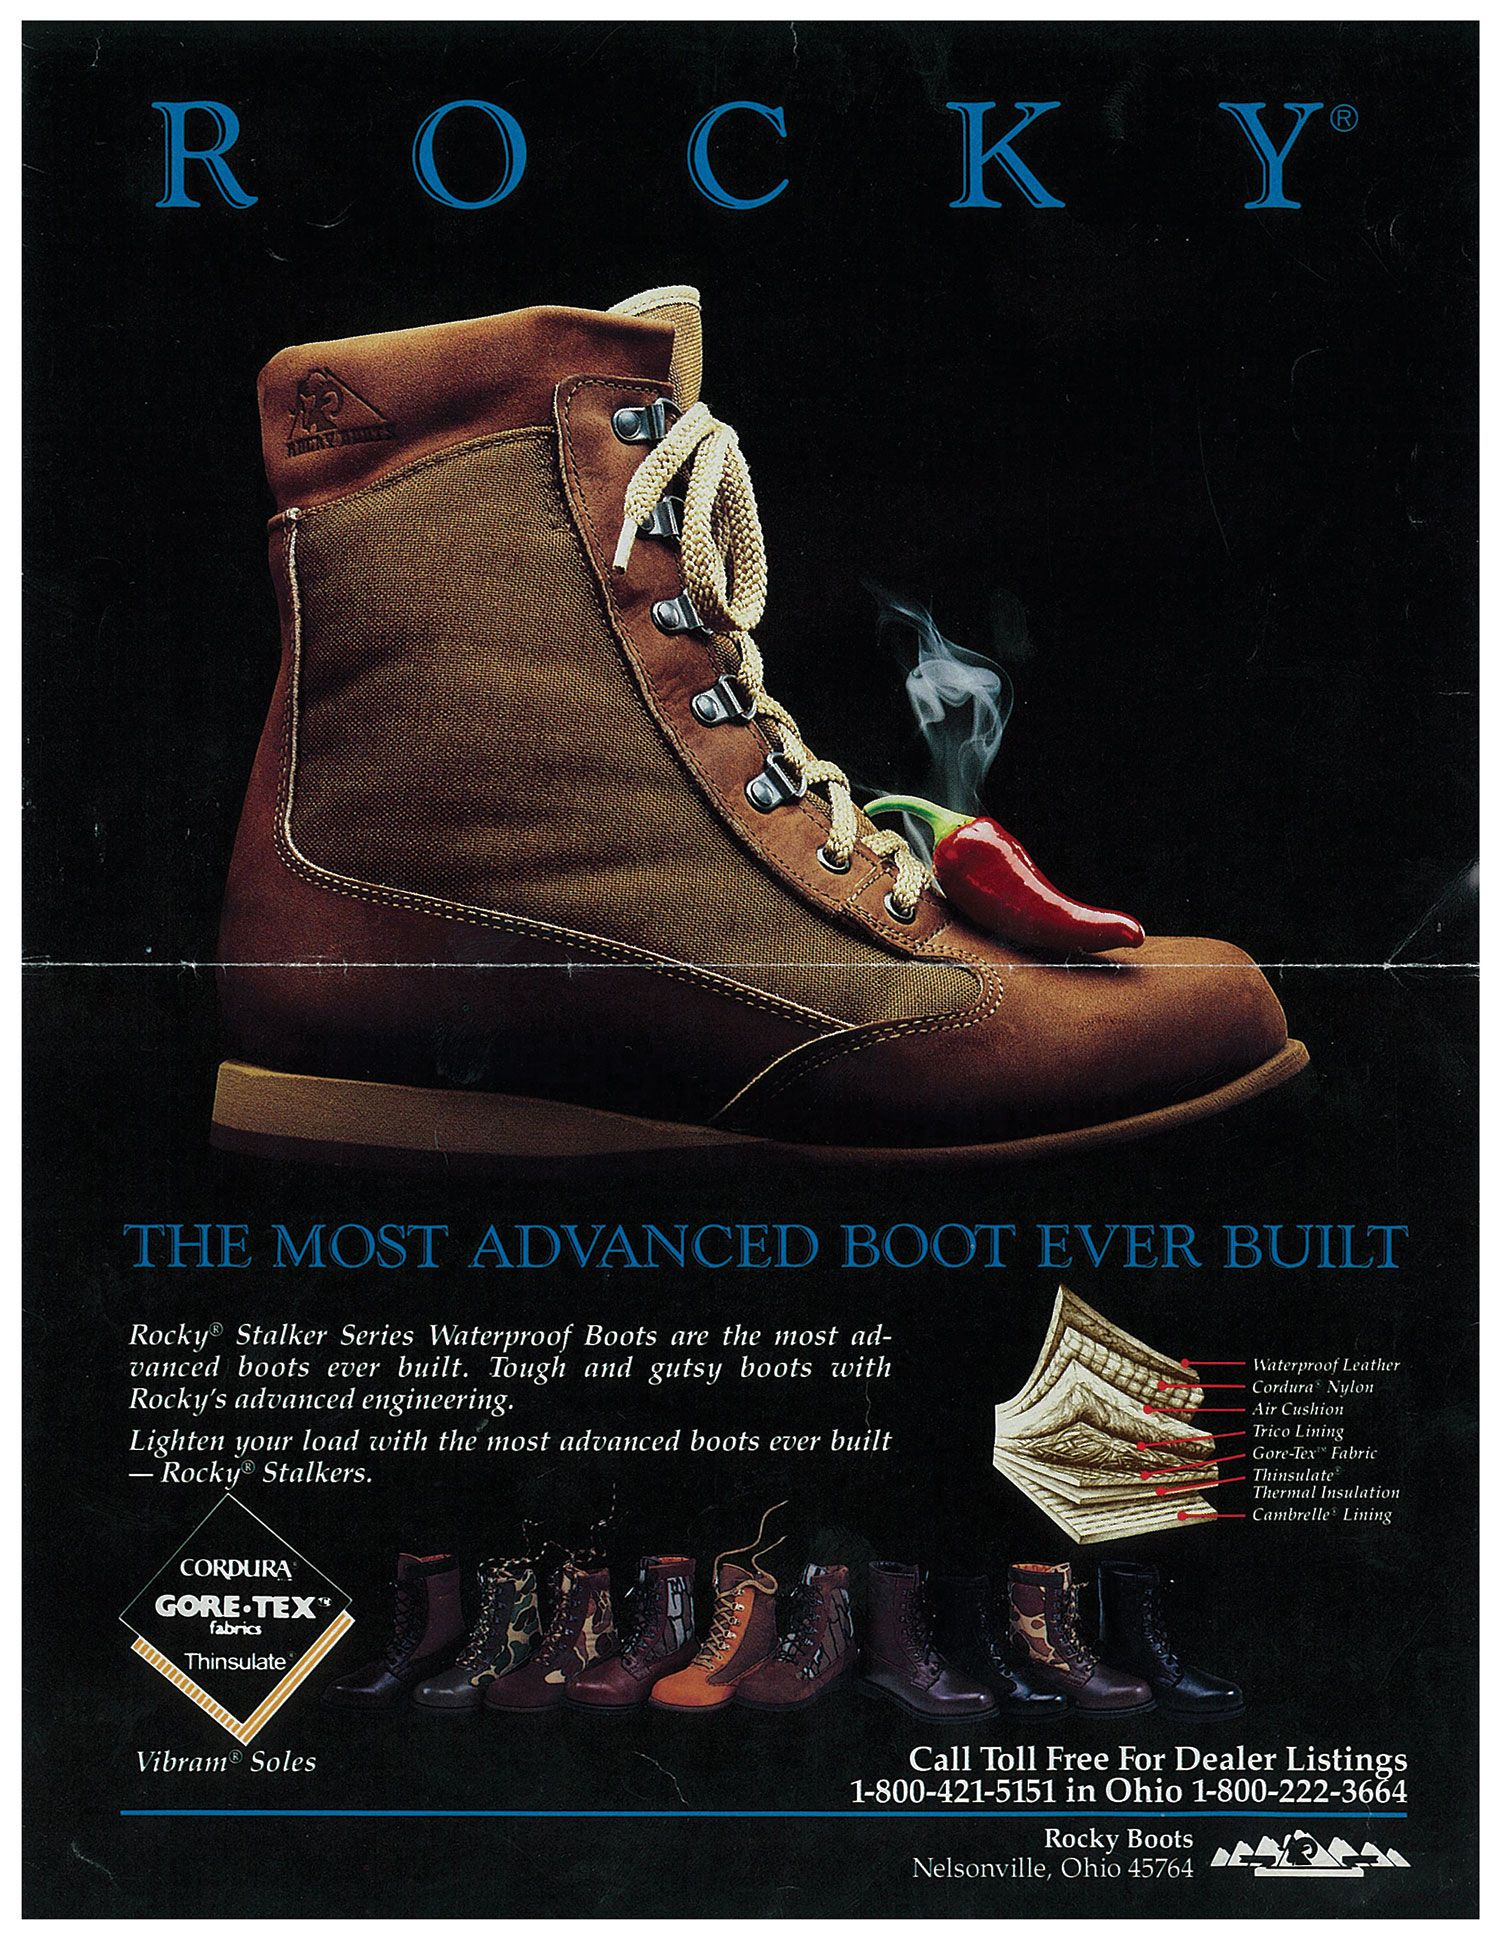 Vintage Rocky Boots Poster